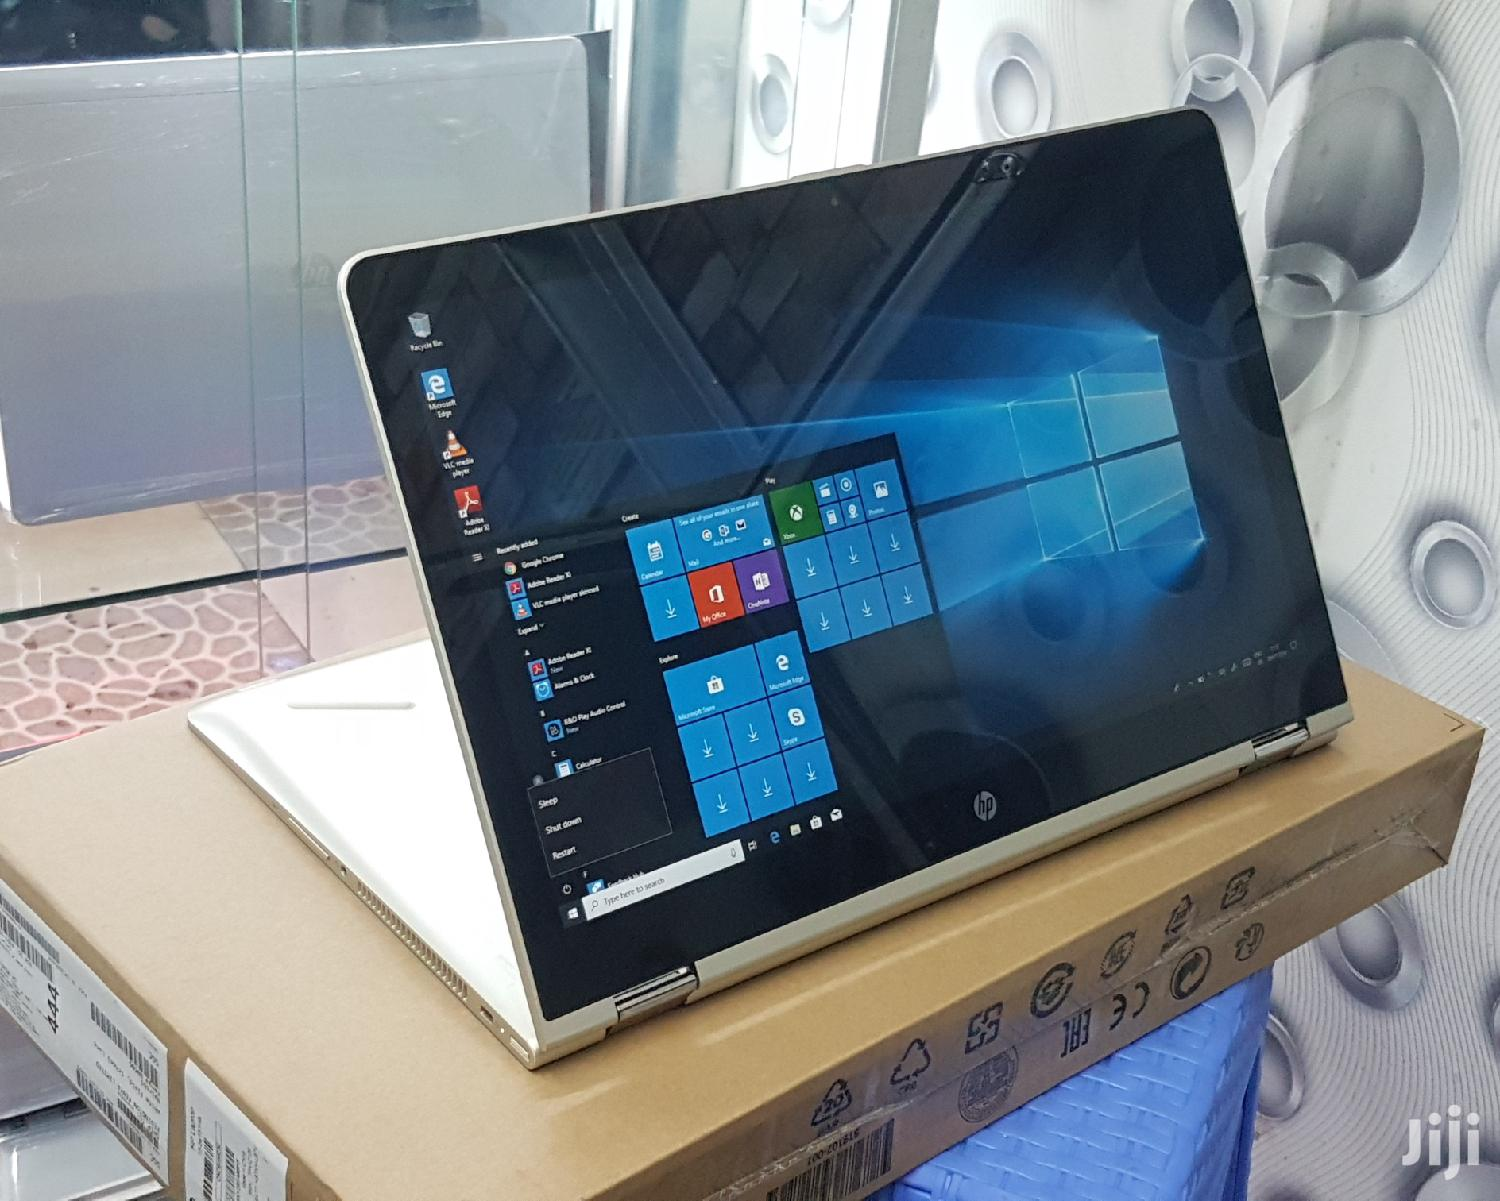 Laptop HP Pavilion X360 15t 8GB Intel Core i5 HDD 1T | Laptops & Computers for sale in Nairobi Central, Nairobi, Kenya